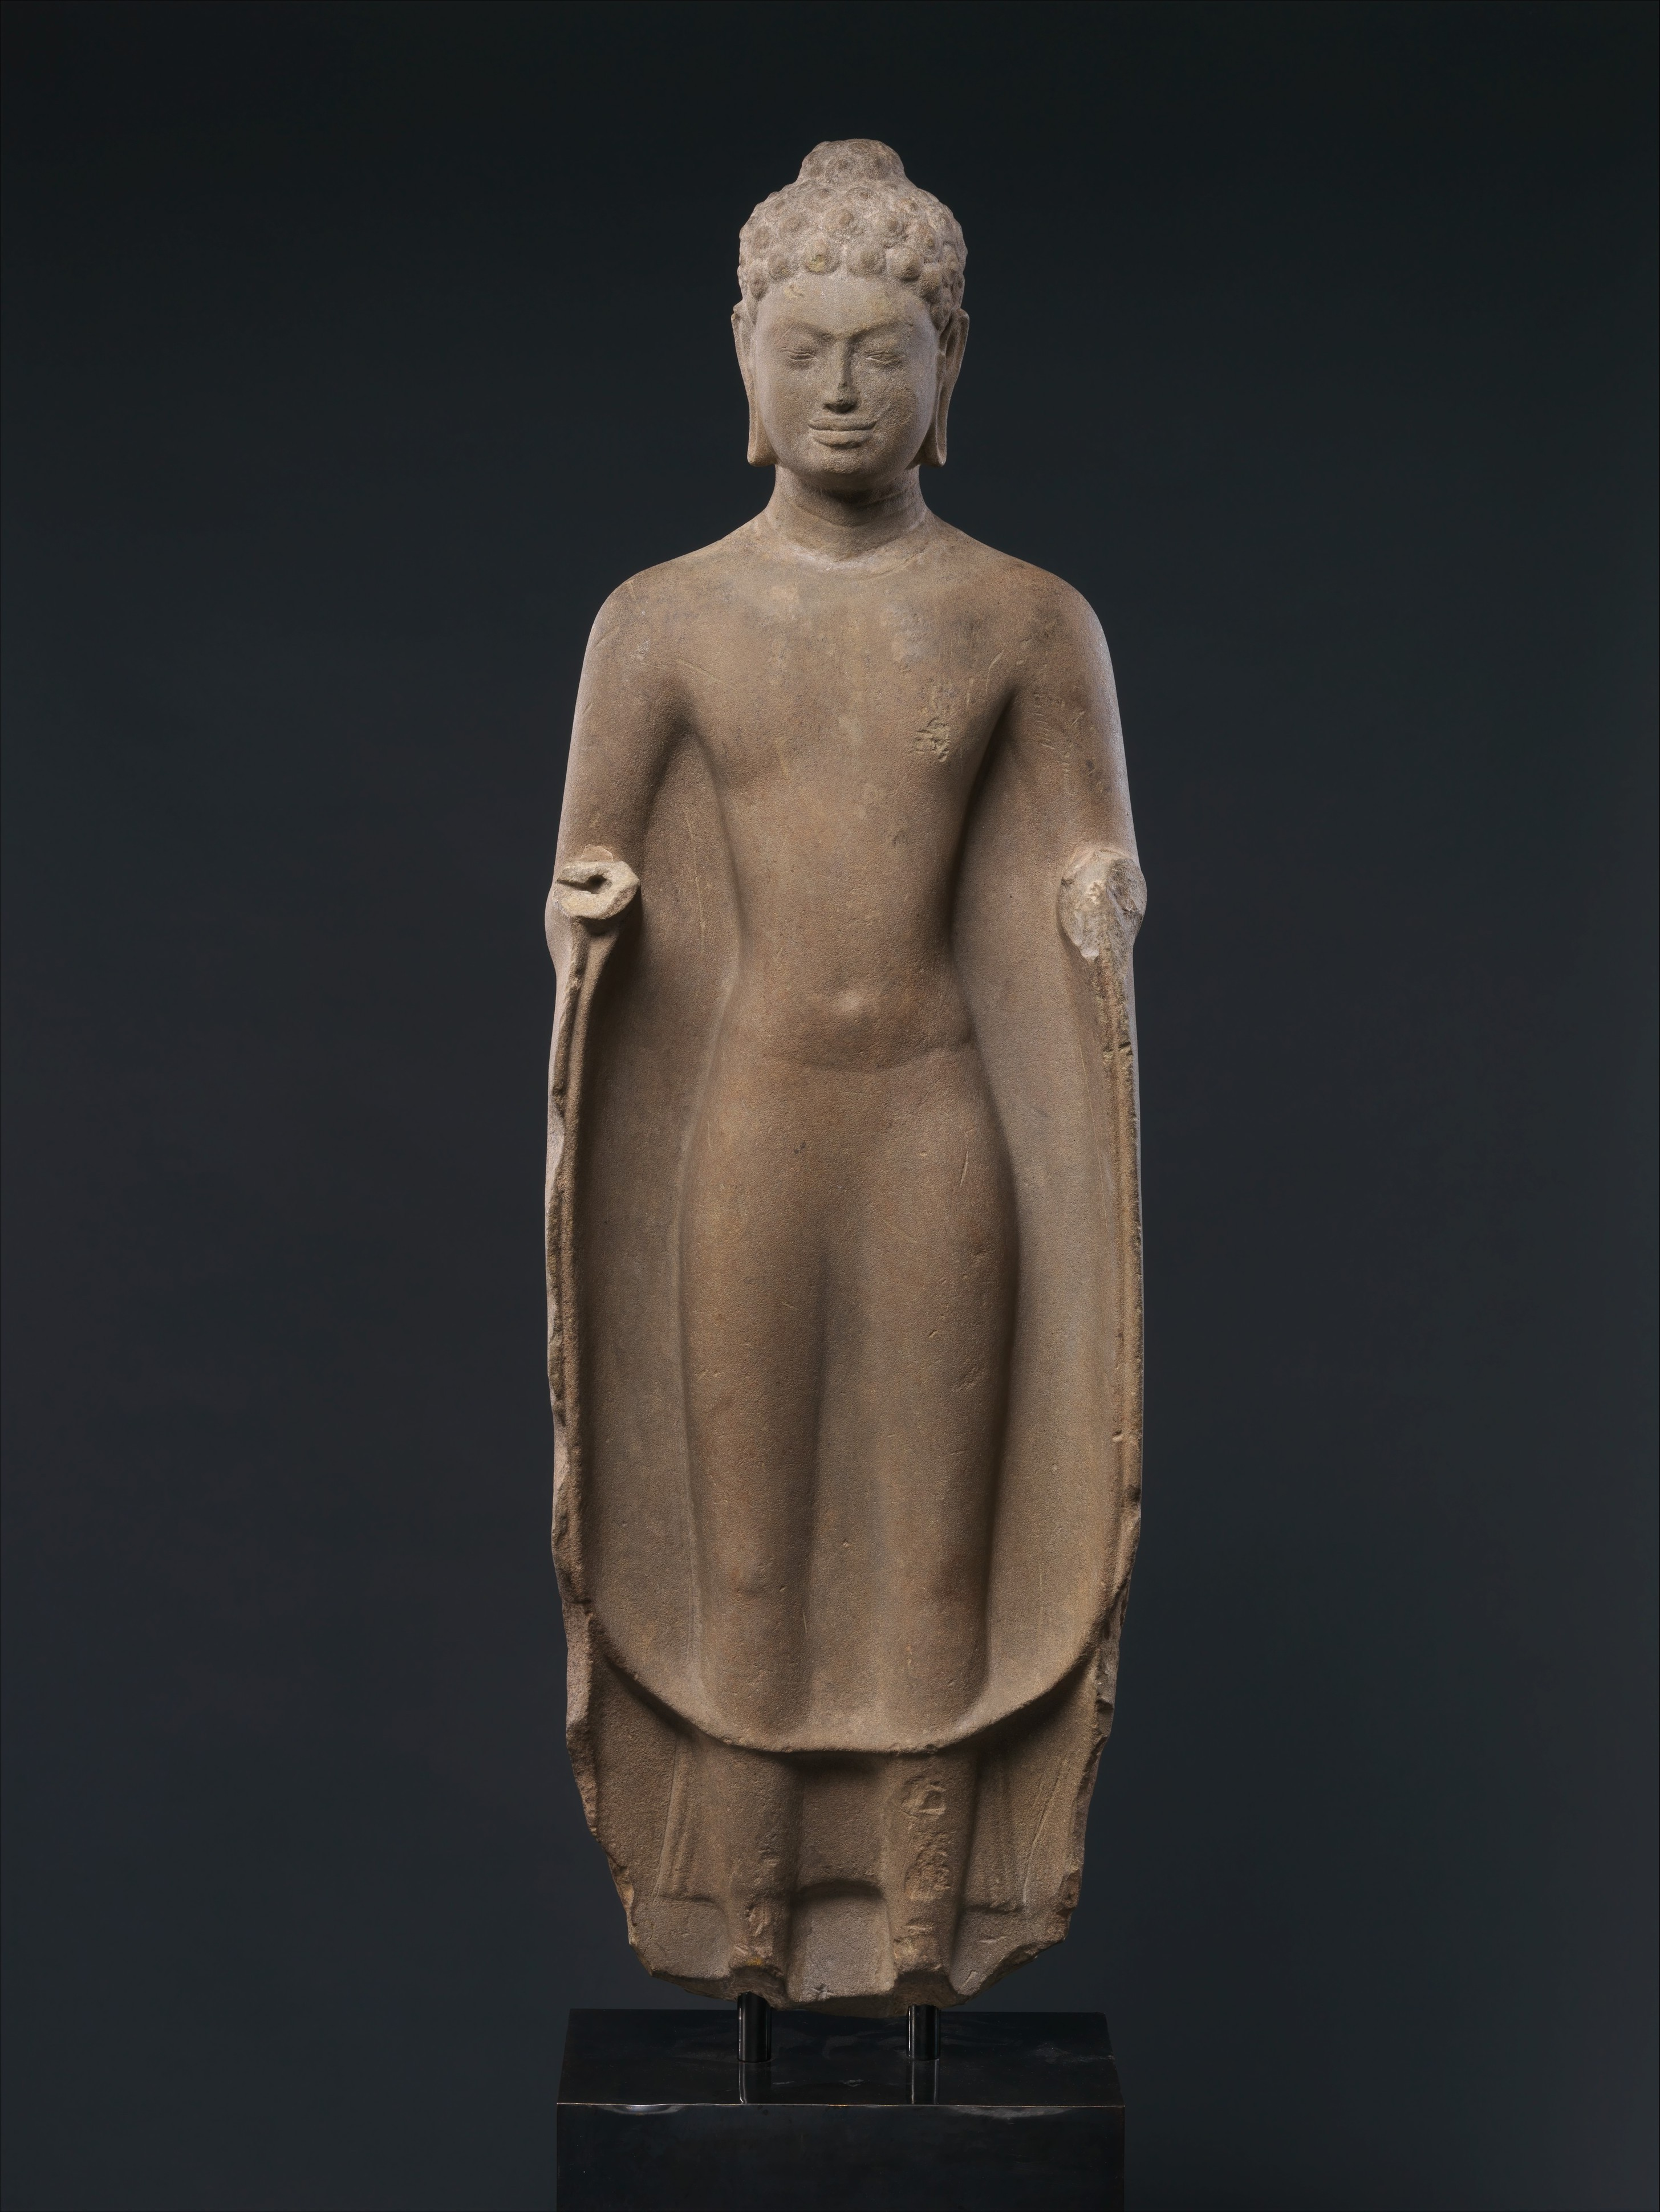 Standing Buddha, ca. first half of the 7th century Cambodia, pre-Angkor period Stone; H. 39 1/2 in. (100.3 cm); W. 12 in. (30.5 cm); D. 4 1/4 in. (10.8 cm) The Metropolitan Museum of Art, New York, Gift of Florence and Herbert Irving, 1993 (1993.477.3) http://www.metmuseum.org/Collections/search-the-collections/38160